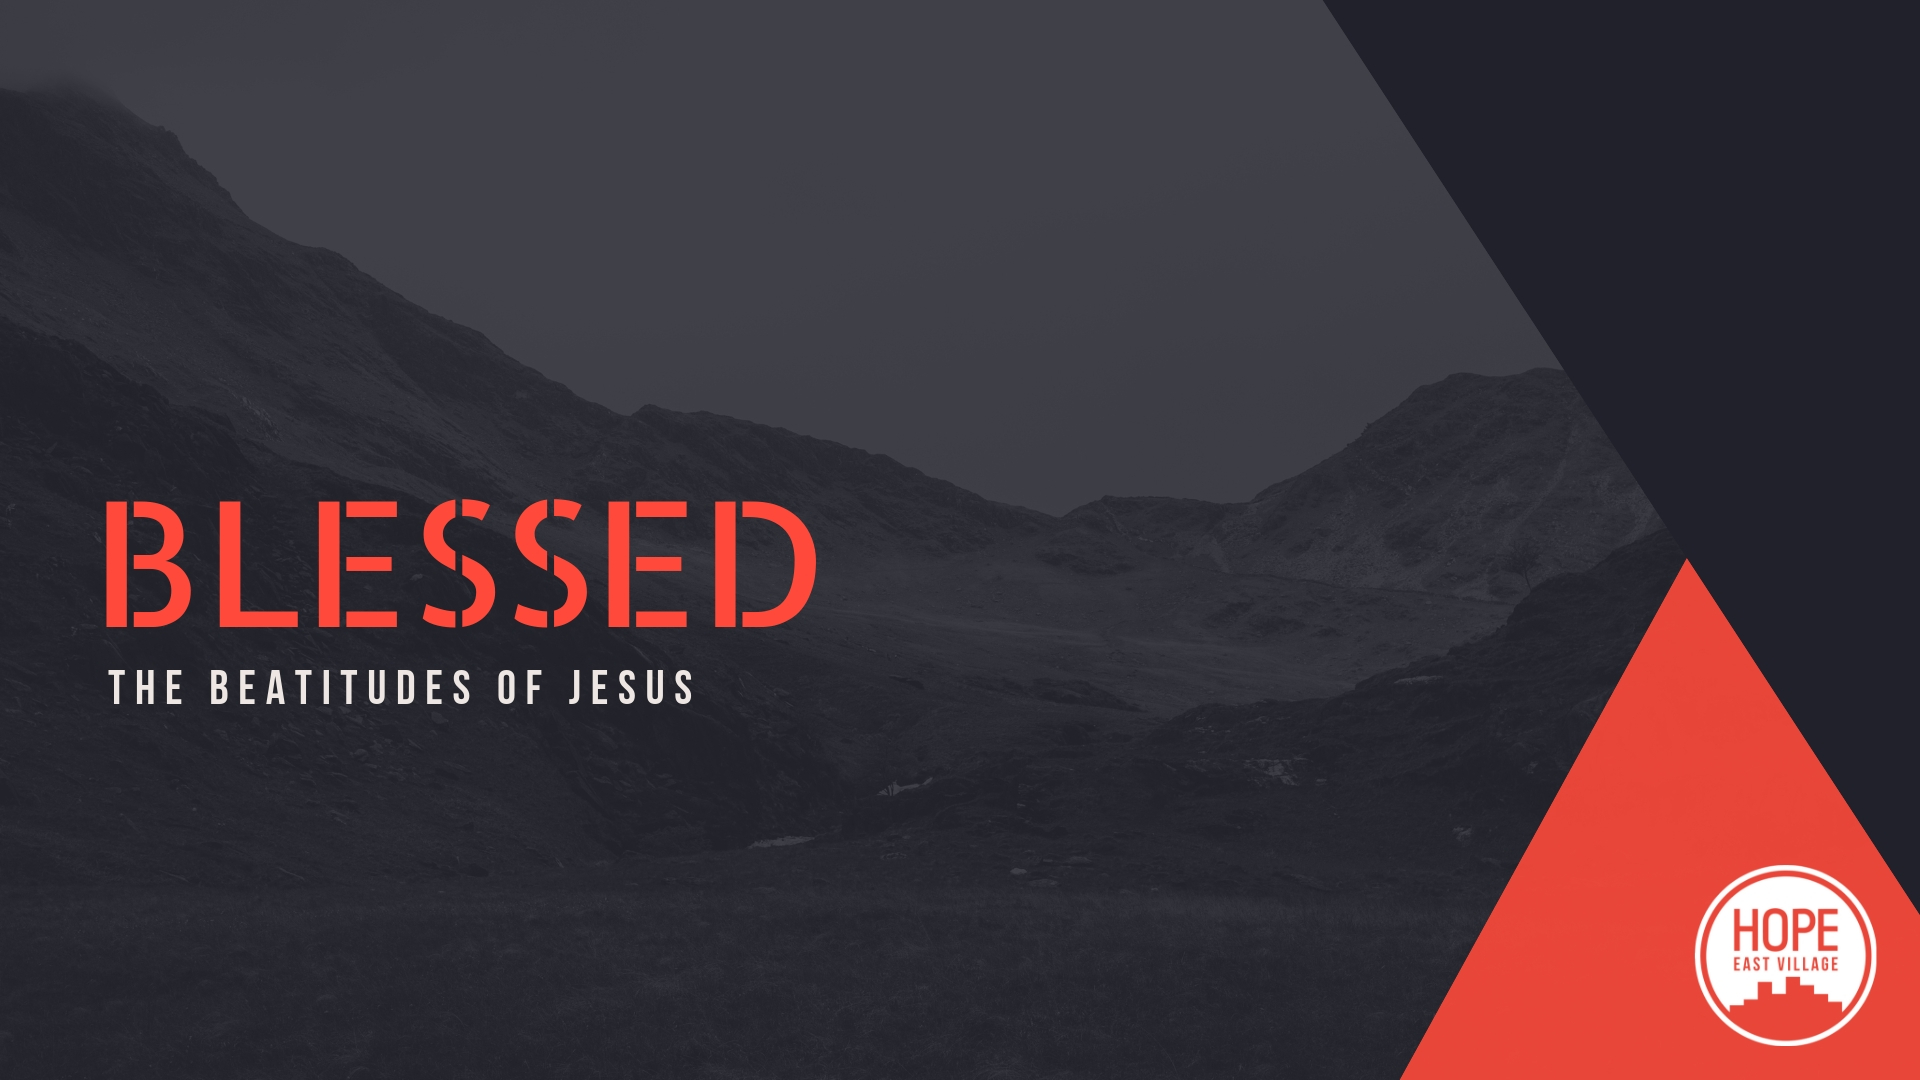 BLESSED: THE BEATITUDES OF JESUS - Journey through the Eastertide season with us and learn about what it means to live as resurrection people in this 8-week series on the Beatitudes!